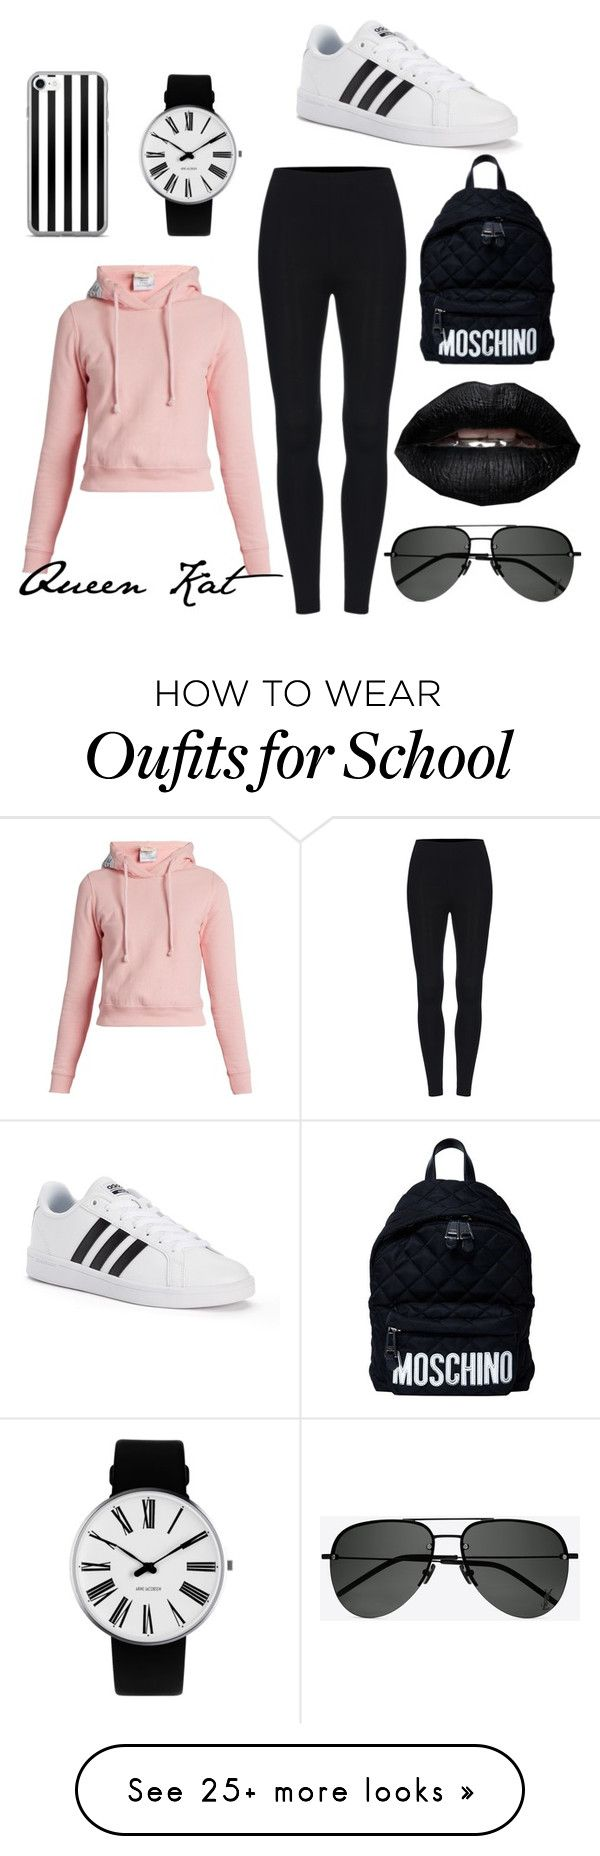 """""""School outfit"""" by queenkatttt on Polyvore featuring Vetements, Yves Saint Laurent, adidas, Rosendahl and Moschino"""